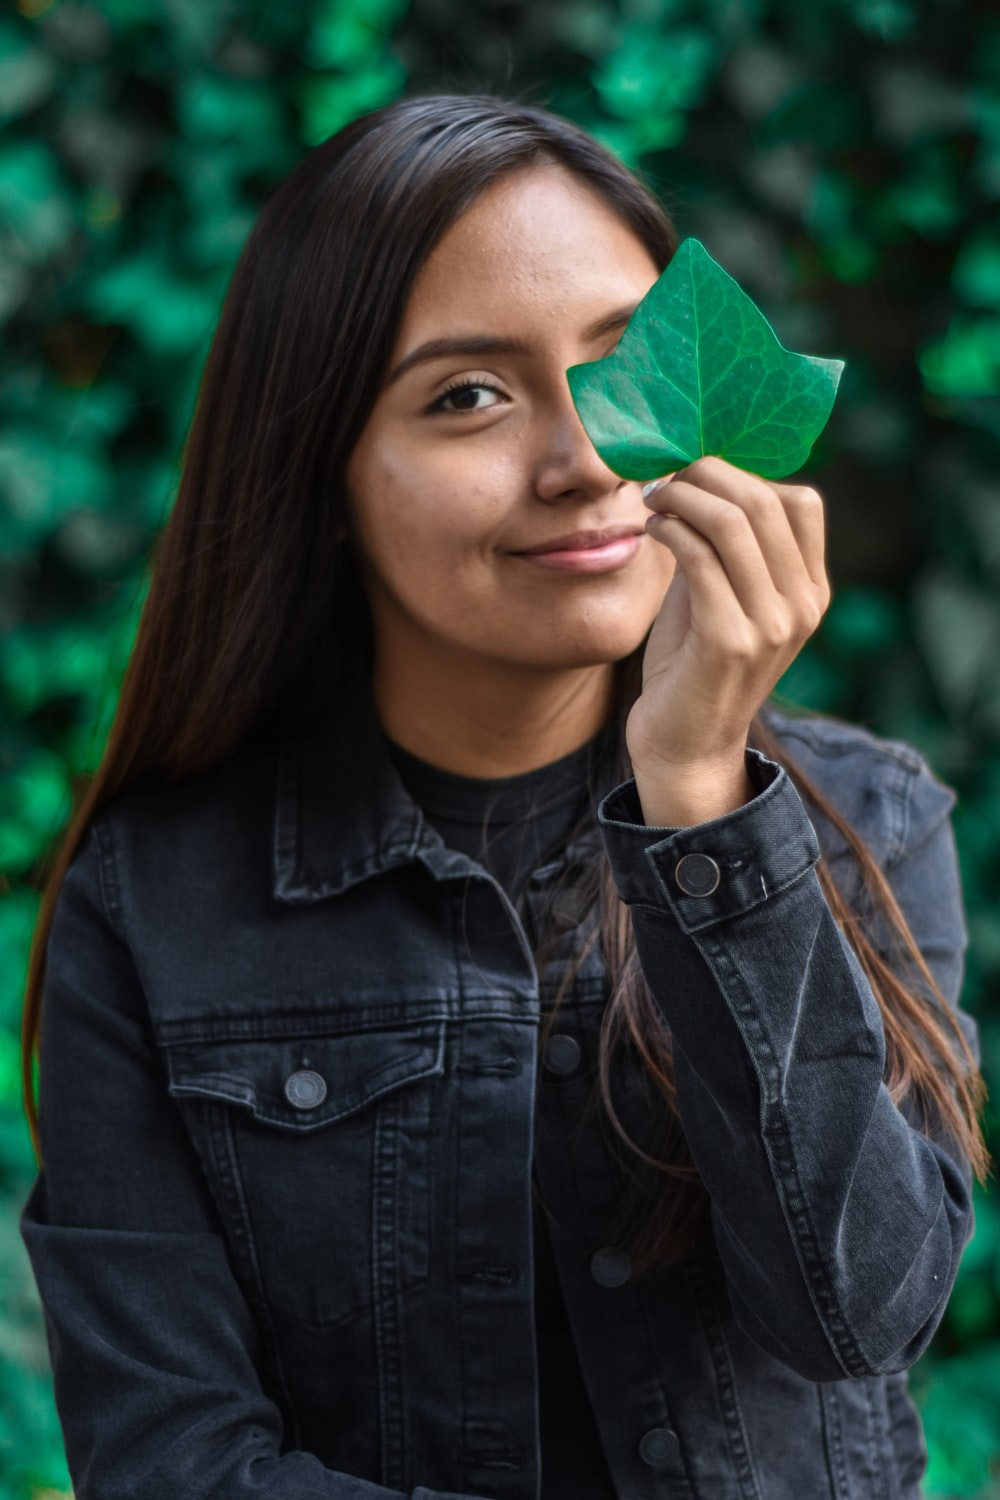 smiling woman holding green leaf